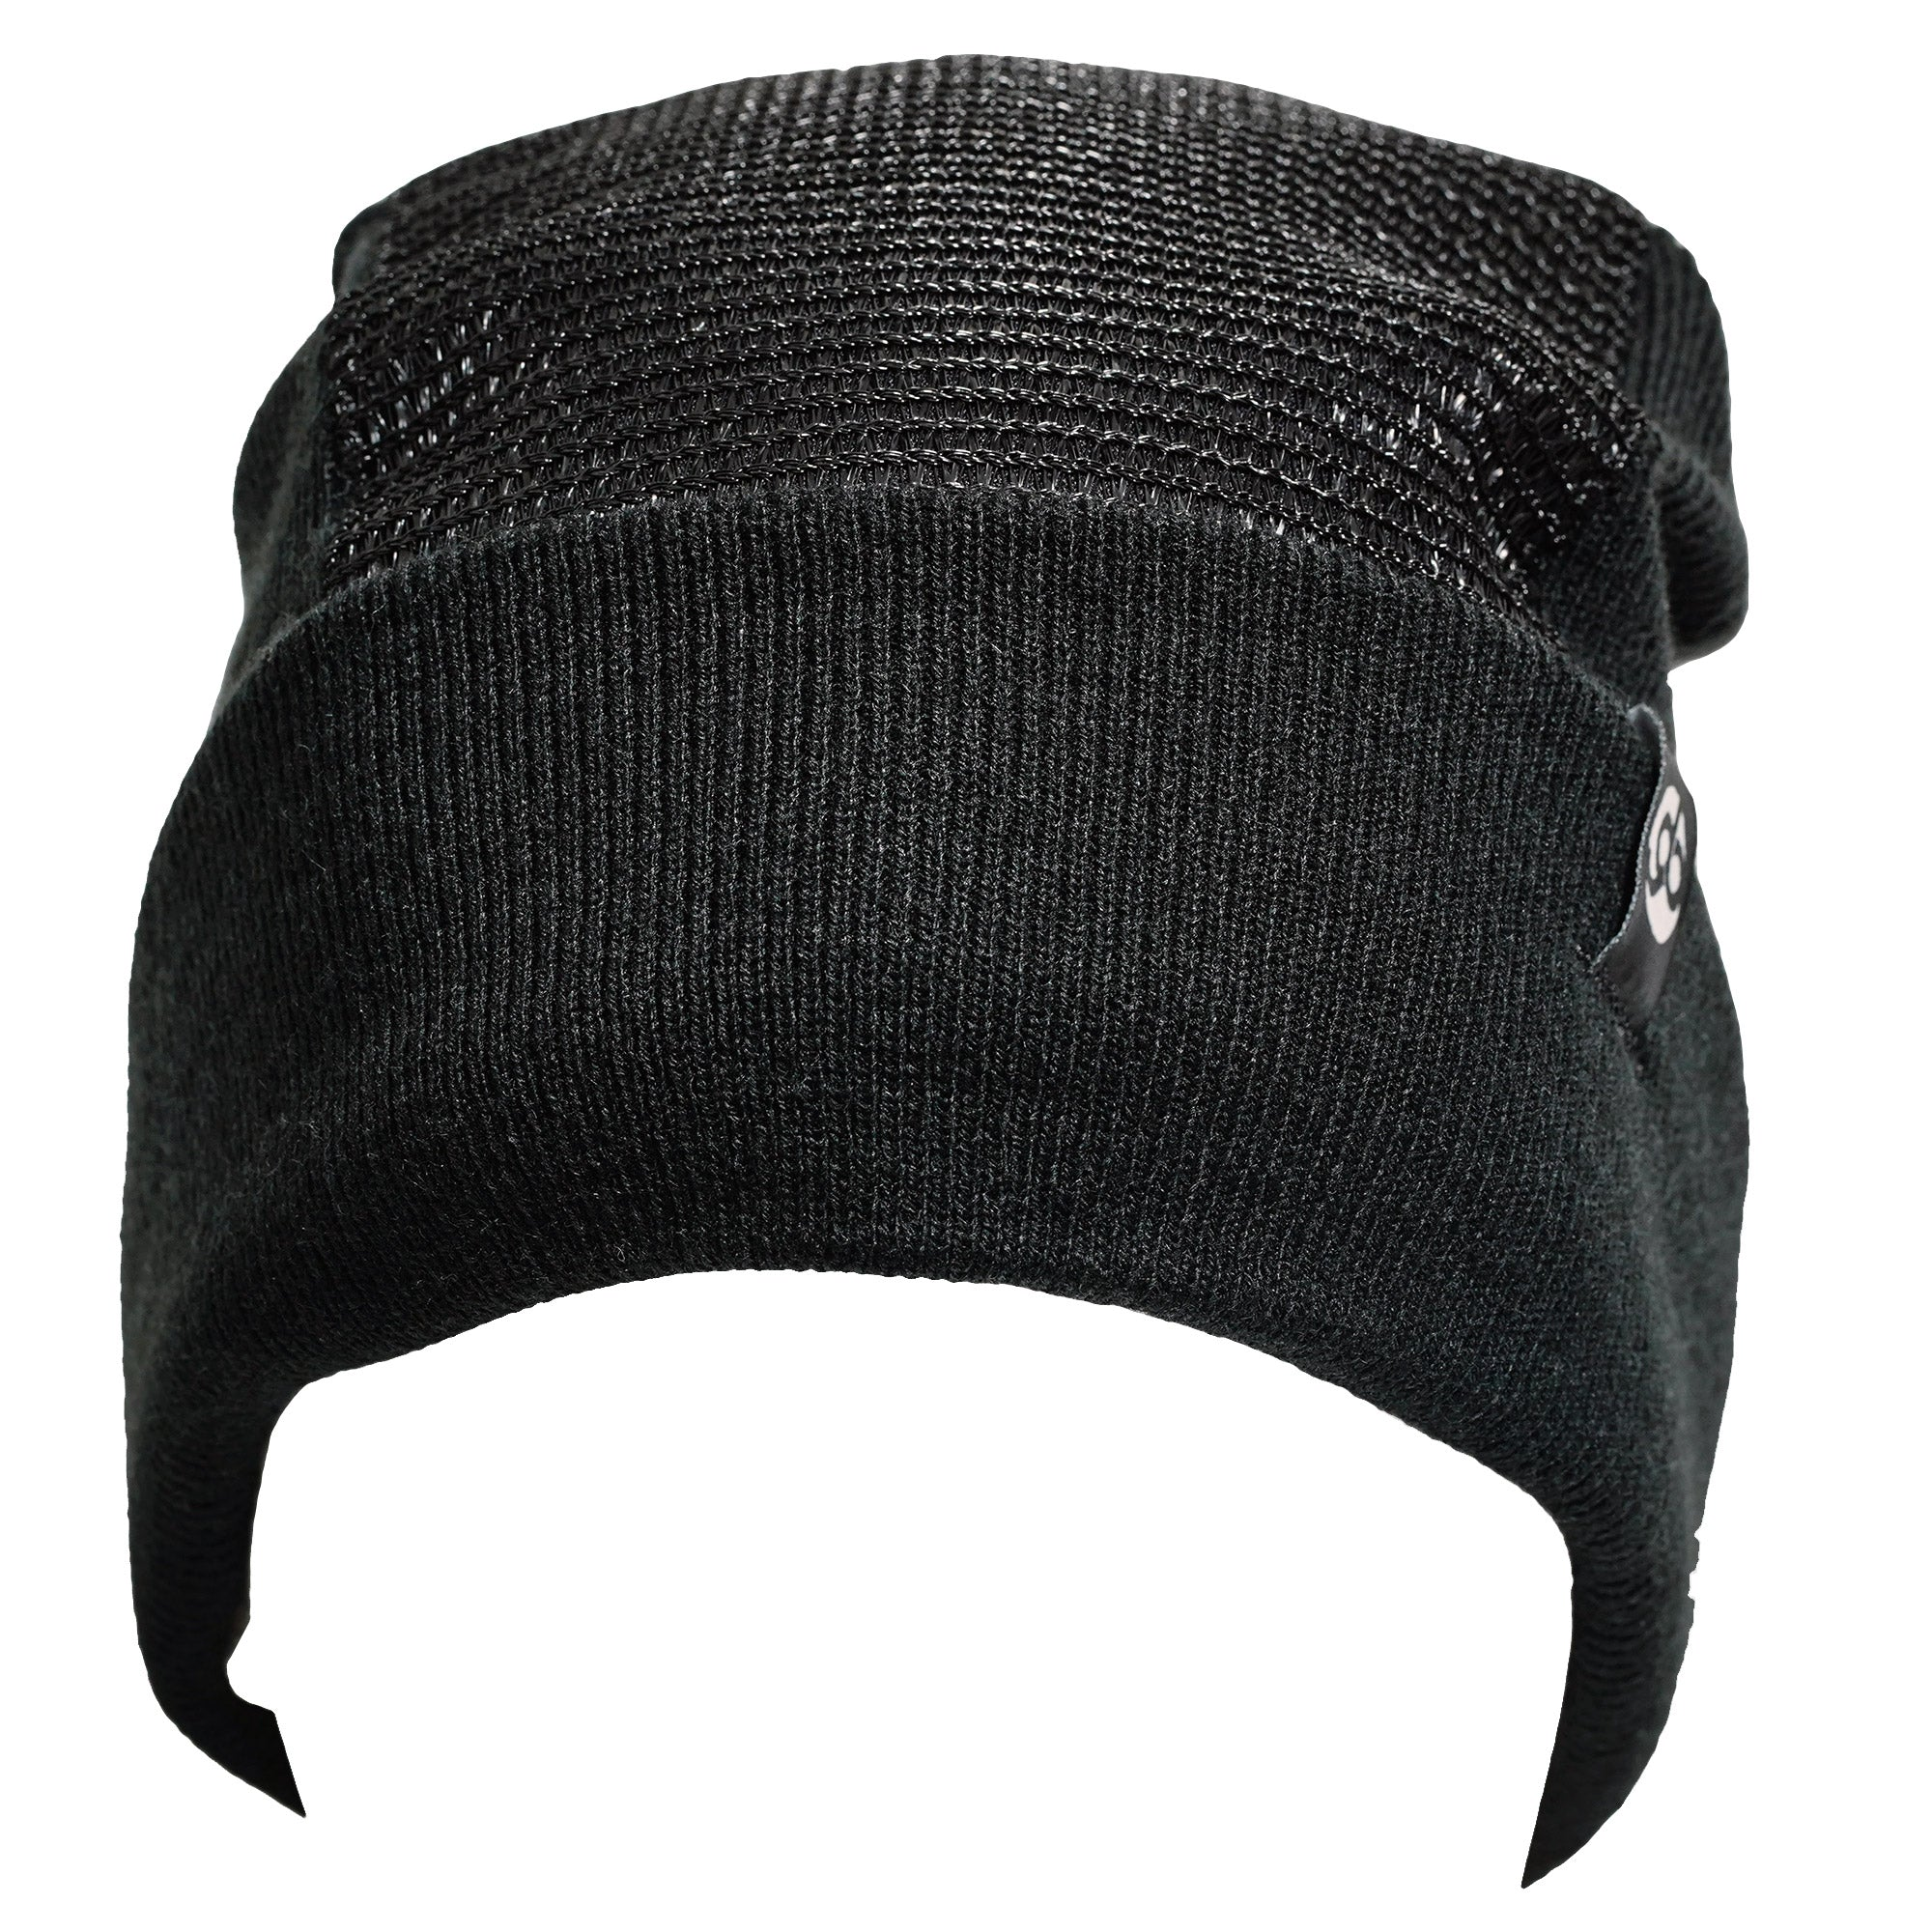 044060a93fc Elite Padded Headspin Beanie - Generation BBOY